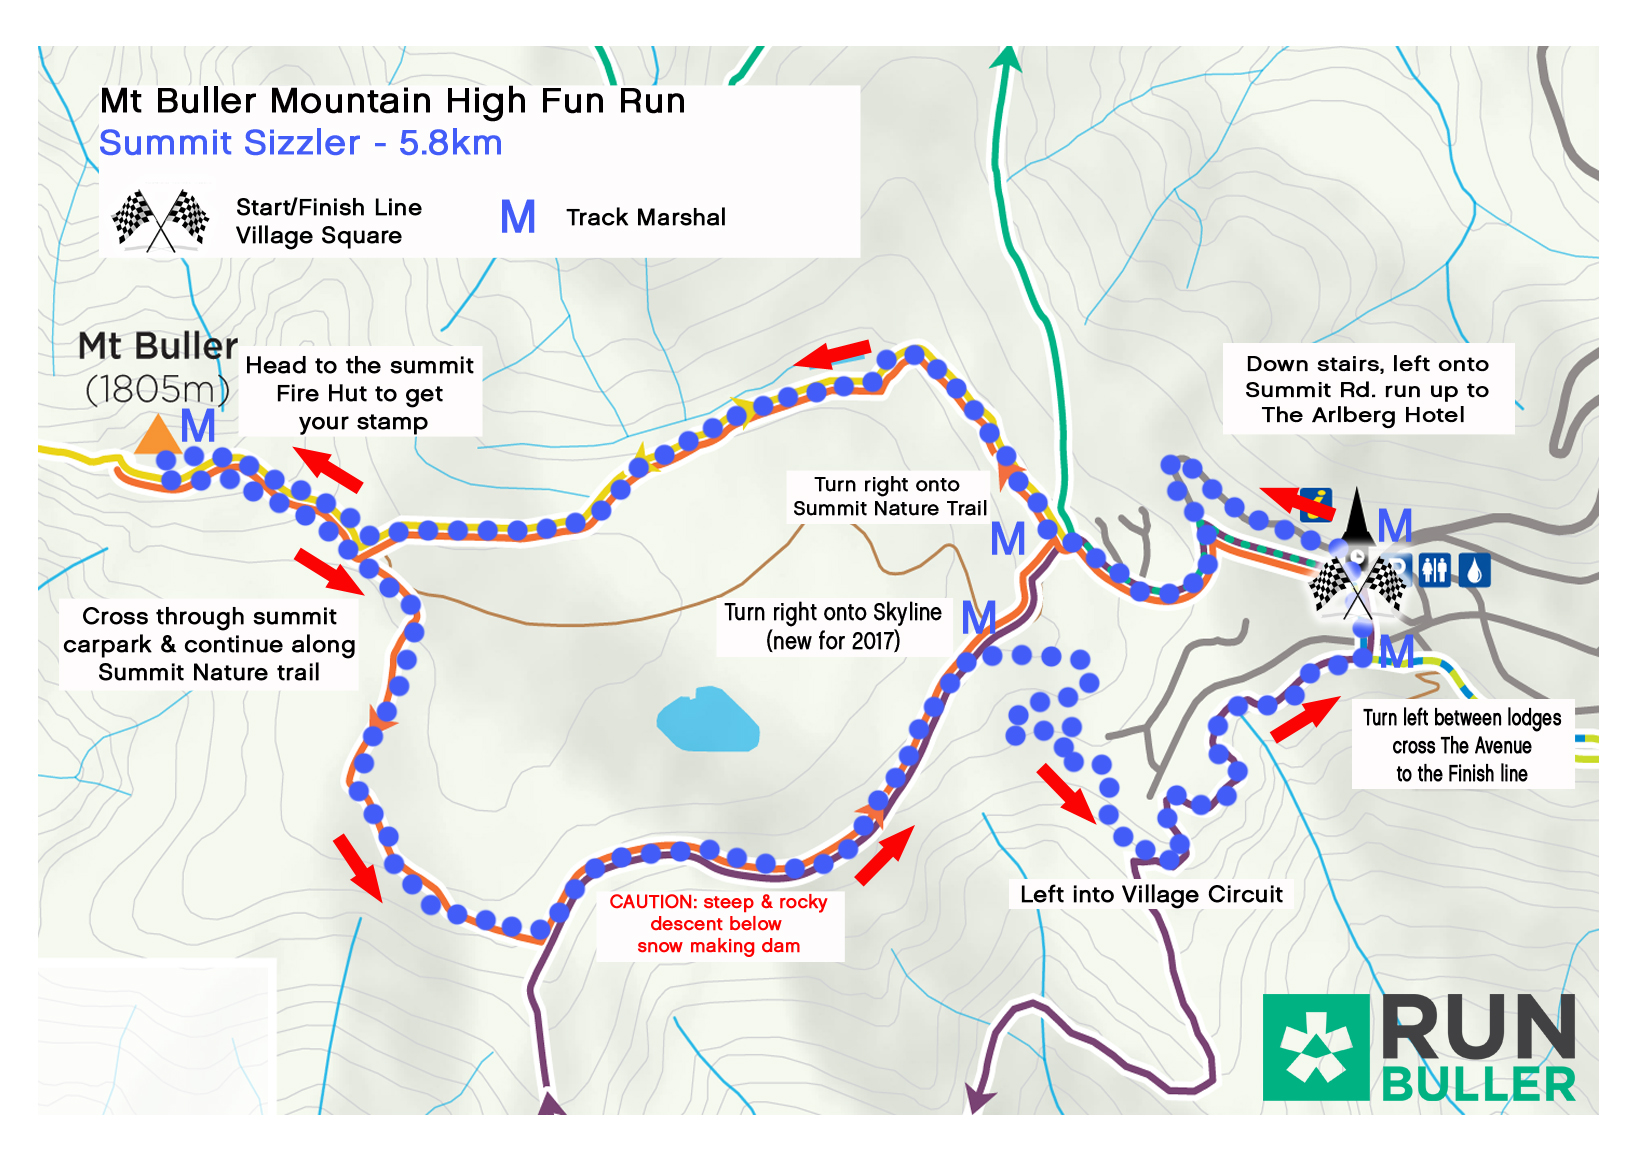 2017 Summit Sizzler Course Map